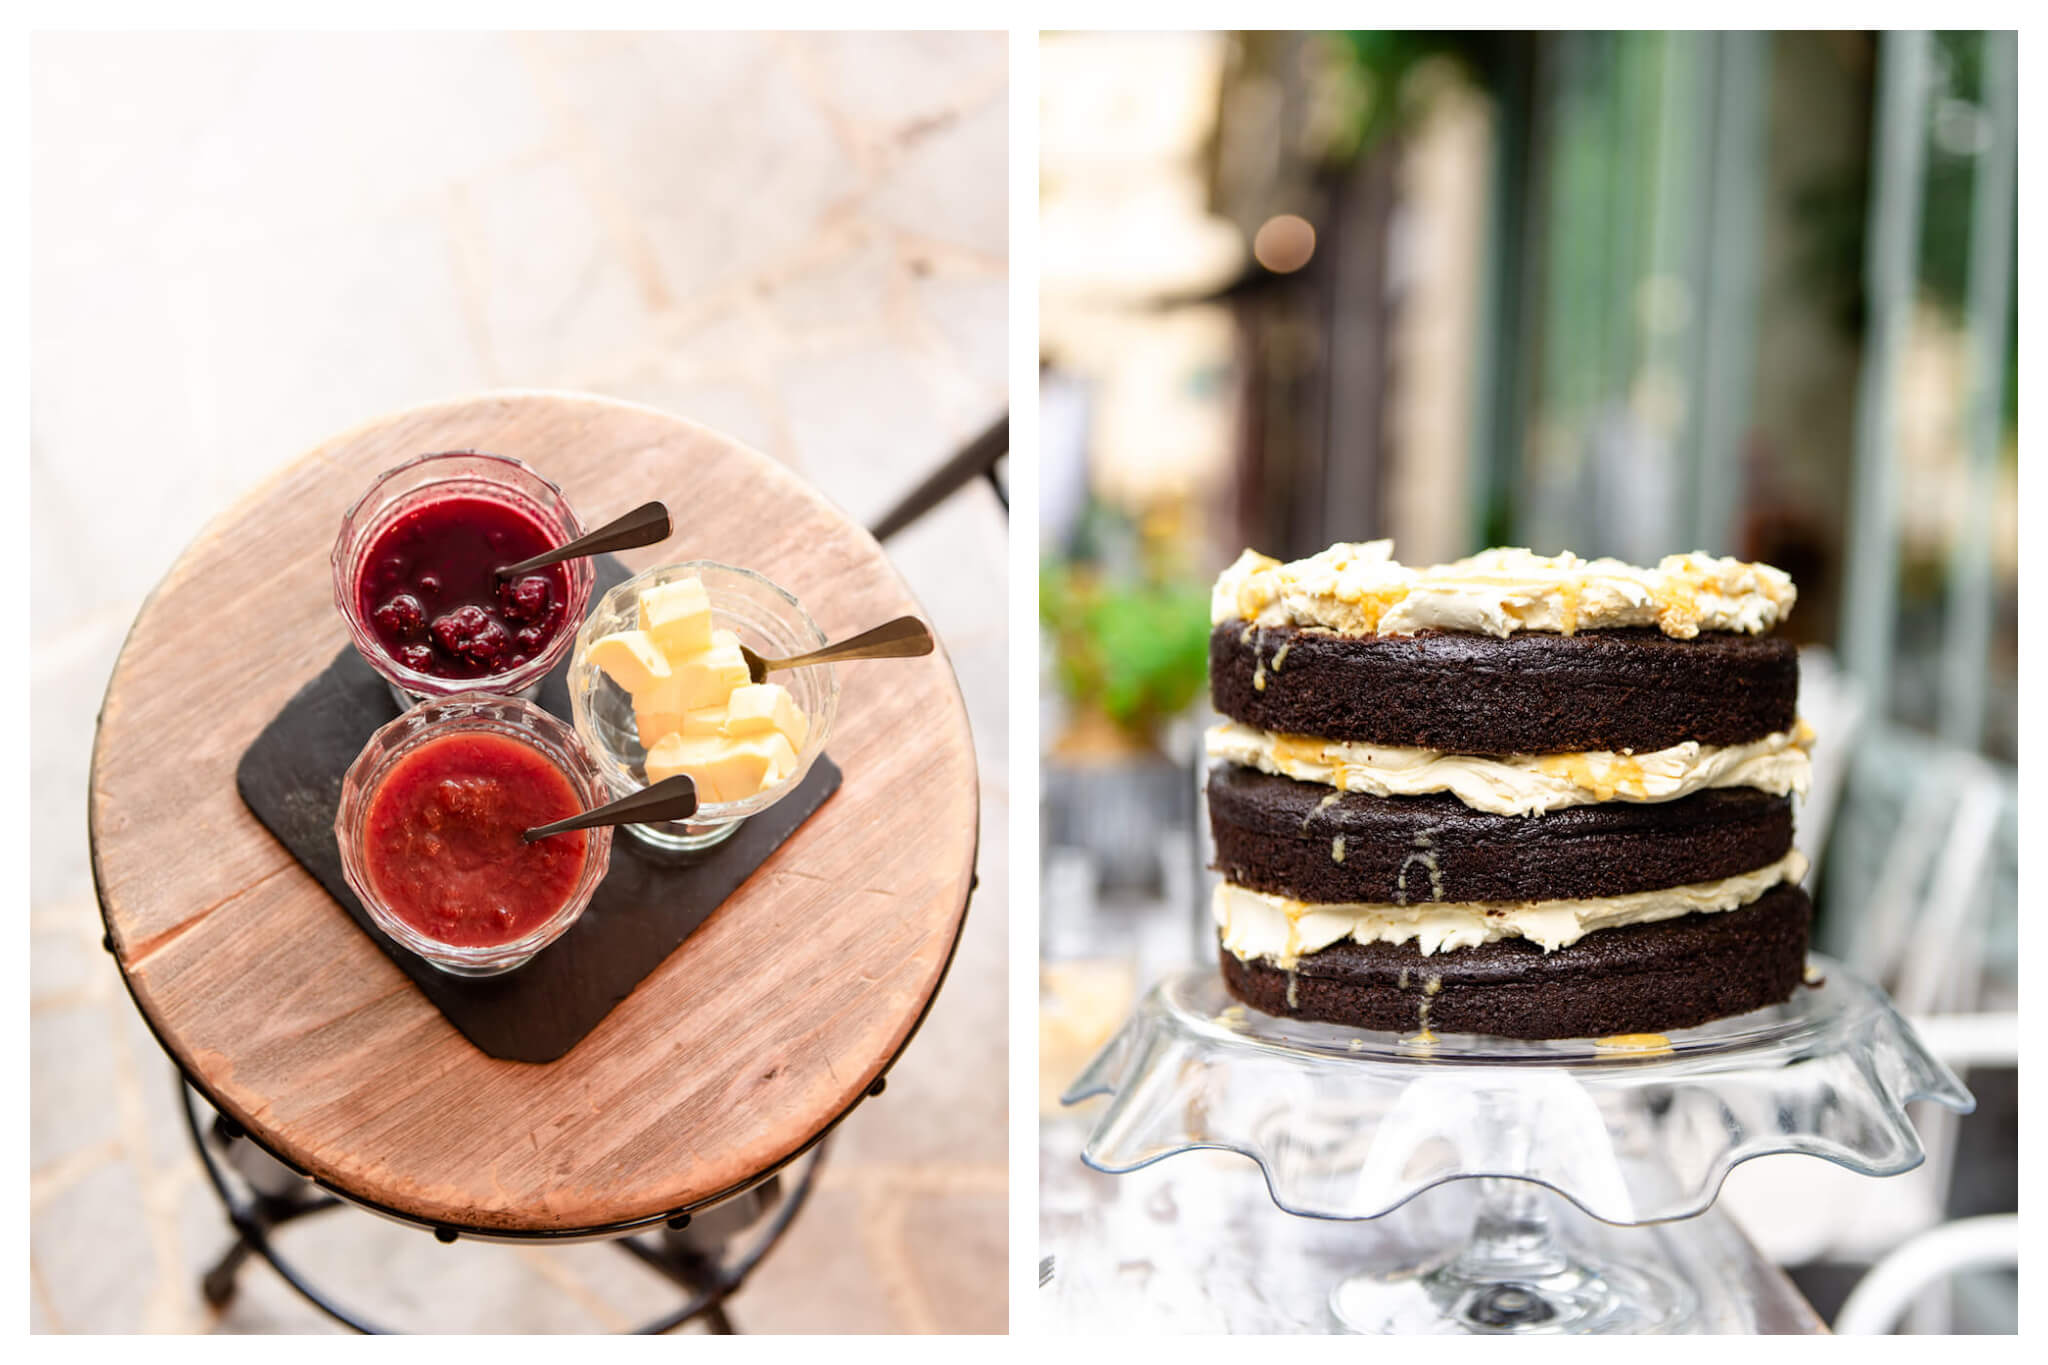 Left: Jars of red jams and a jar of butter sit atop a wooden table at Treize au Jardin, Right: A layered chocolate cake sits on a glass cake holder at Treize au Jardin